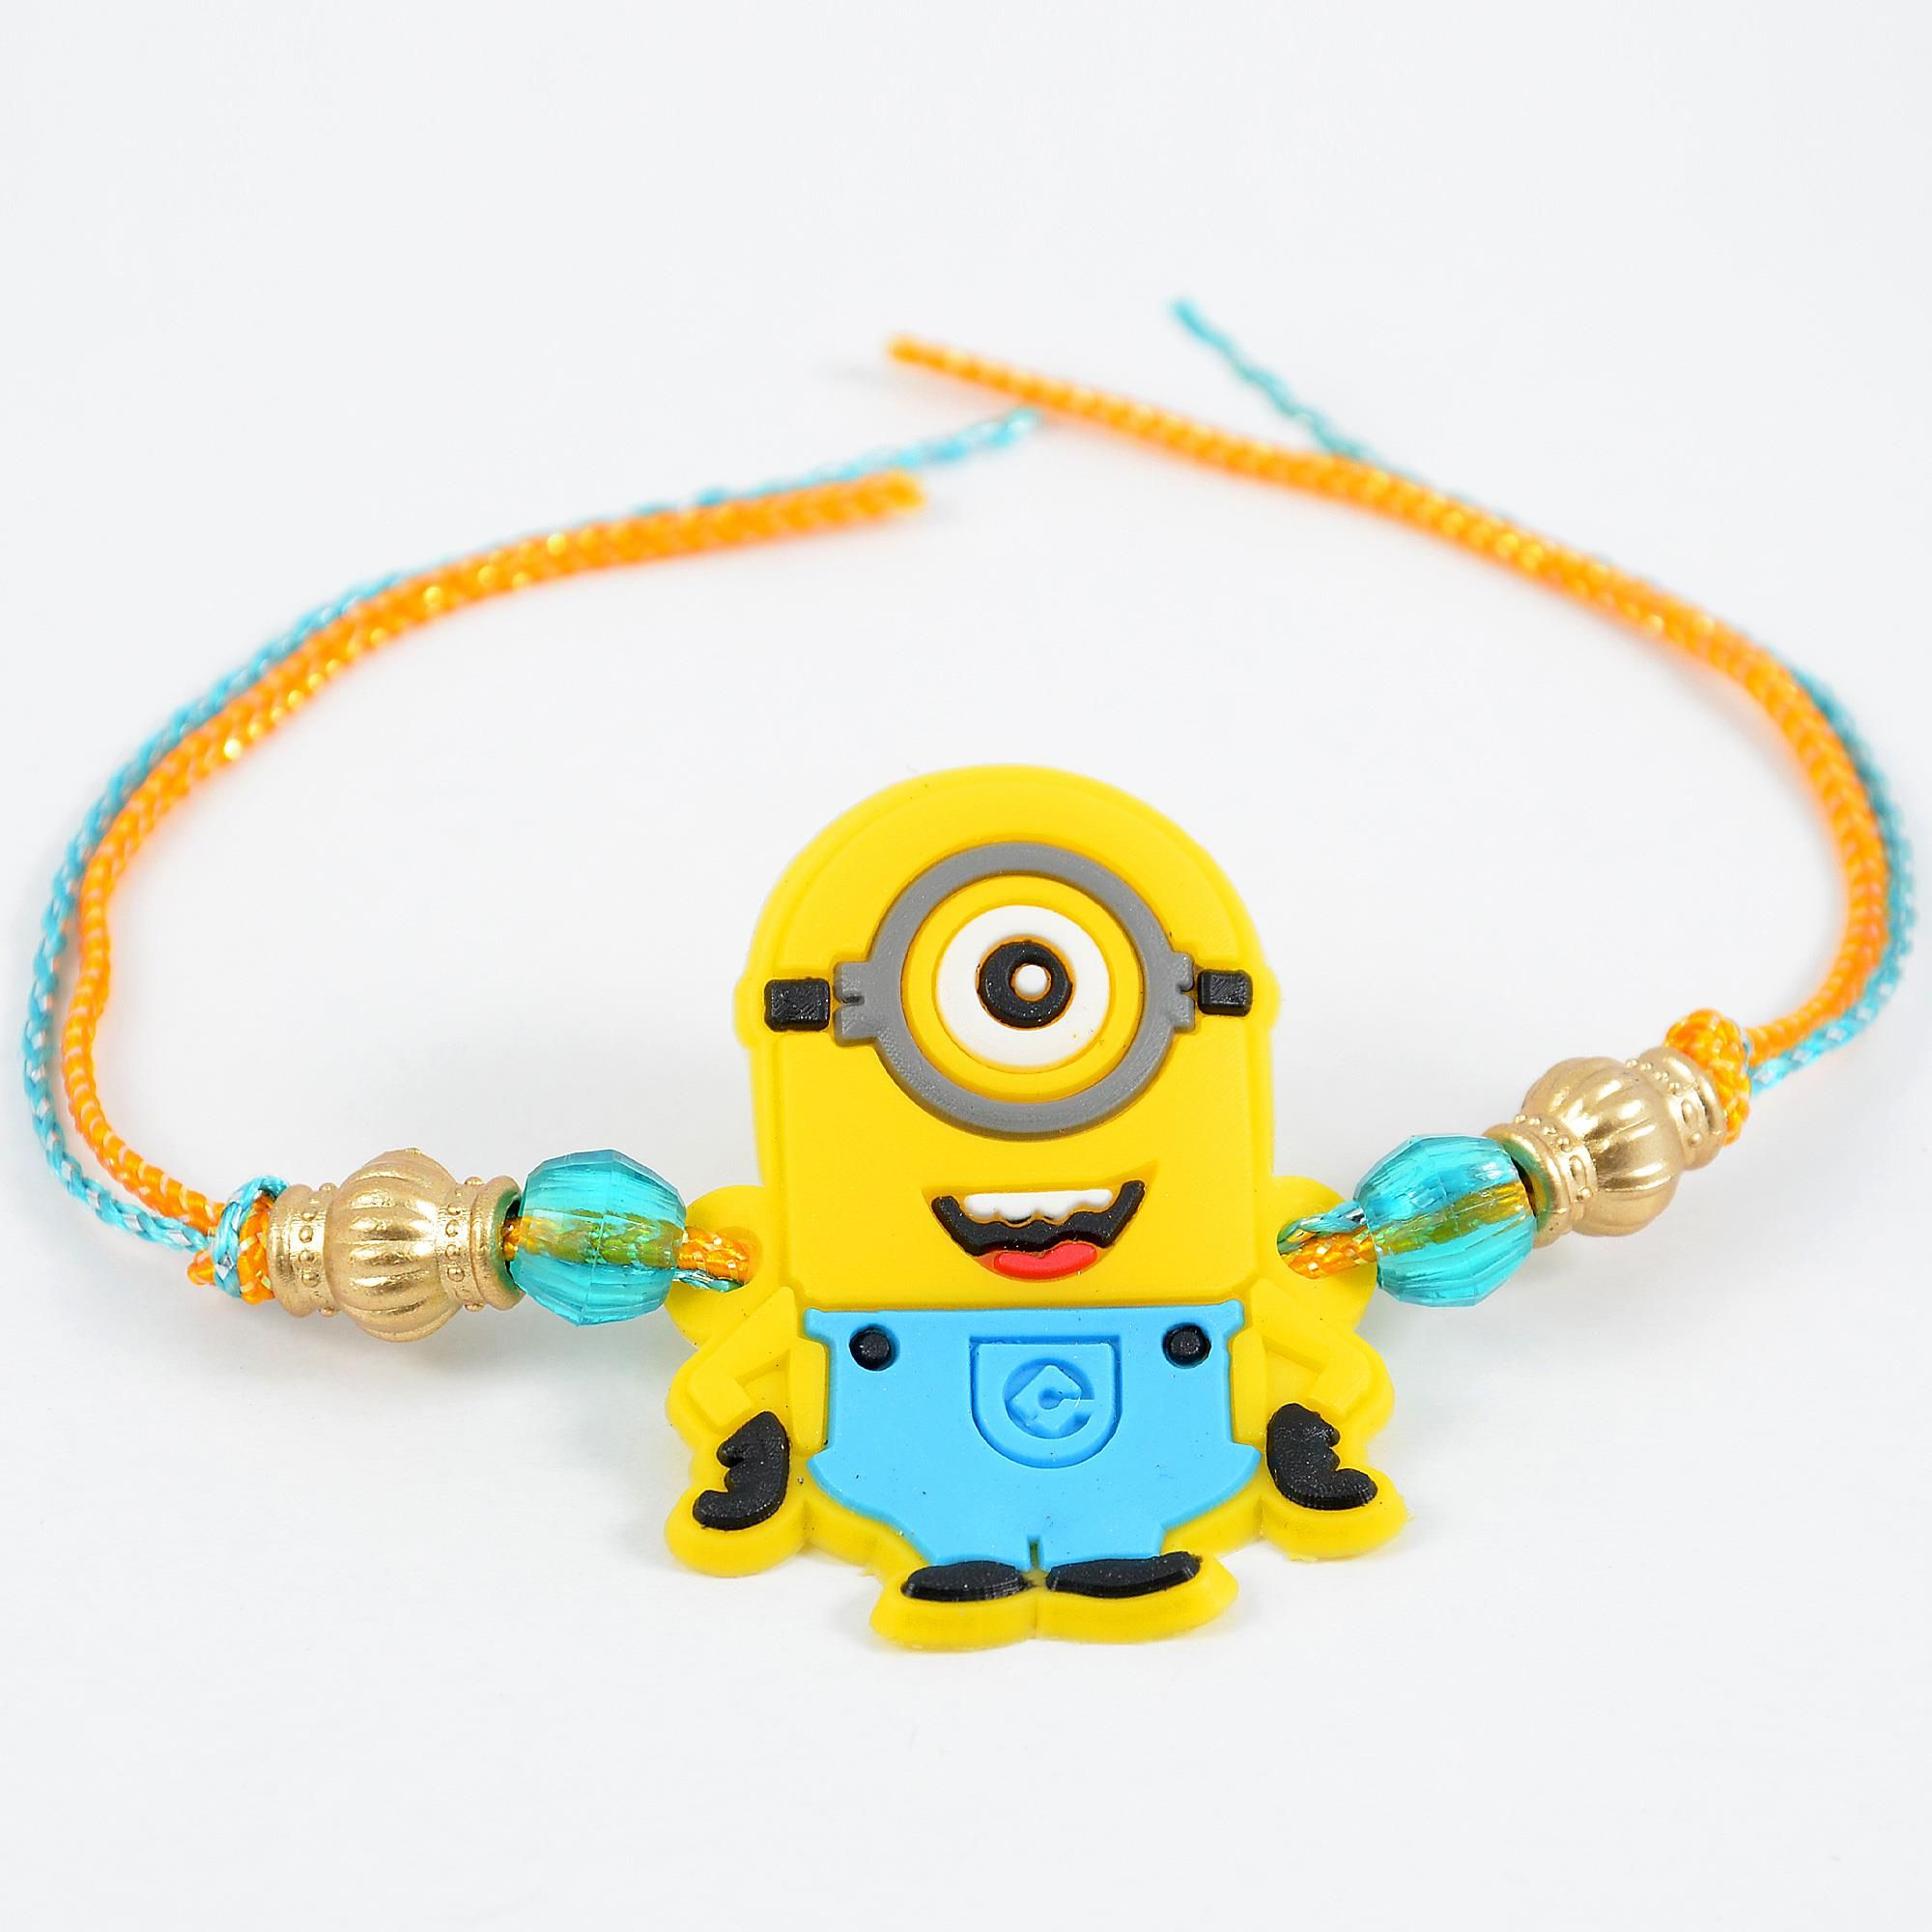 Delightful Yellow Minion Rakhi : The rakhi features a minion from the popular children's movie despicable me along with blue and bronze beads and yellow and blue zari threads.